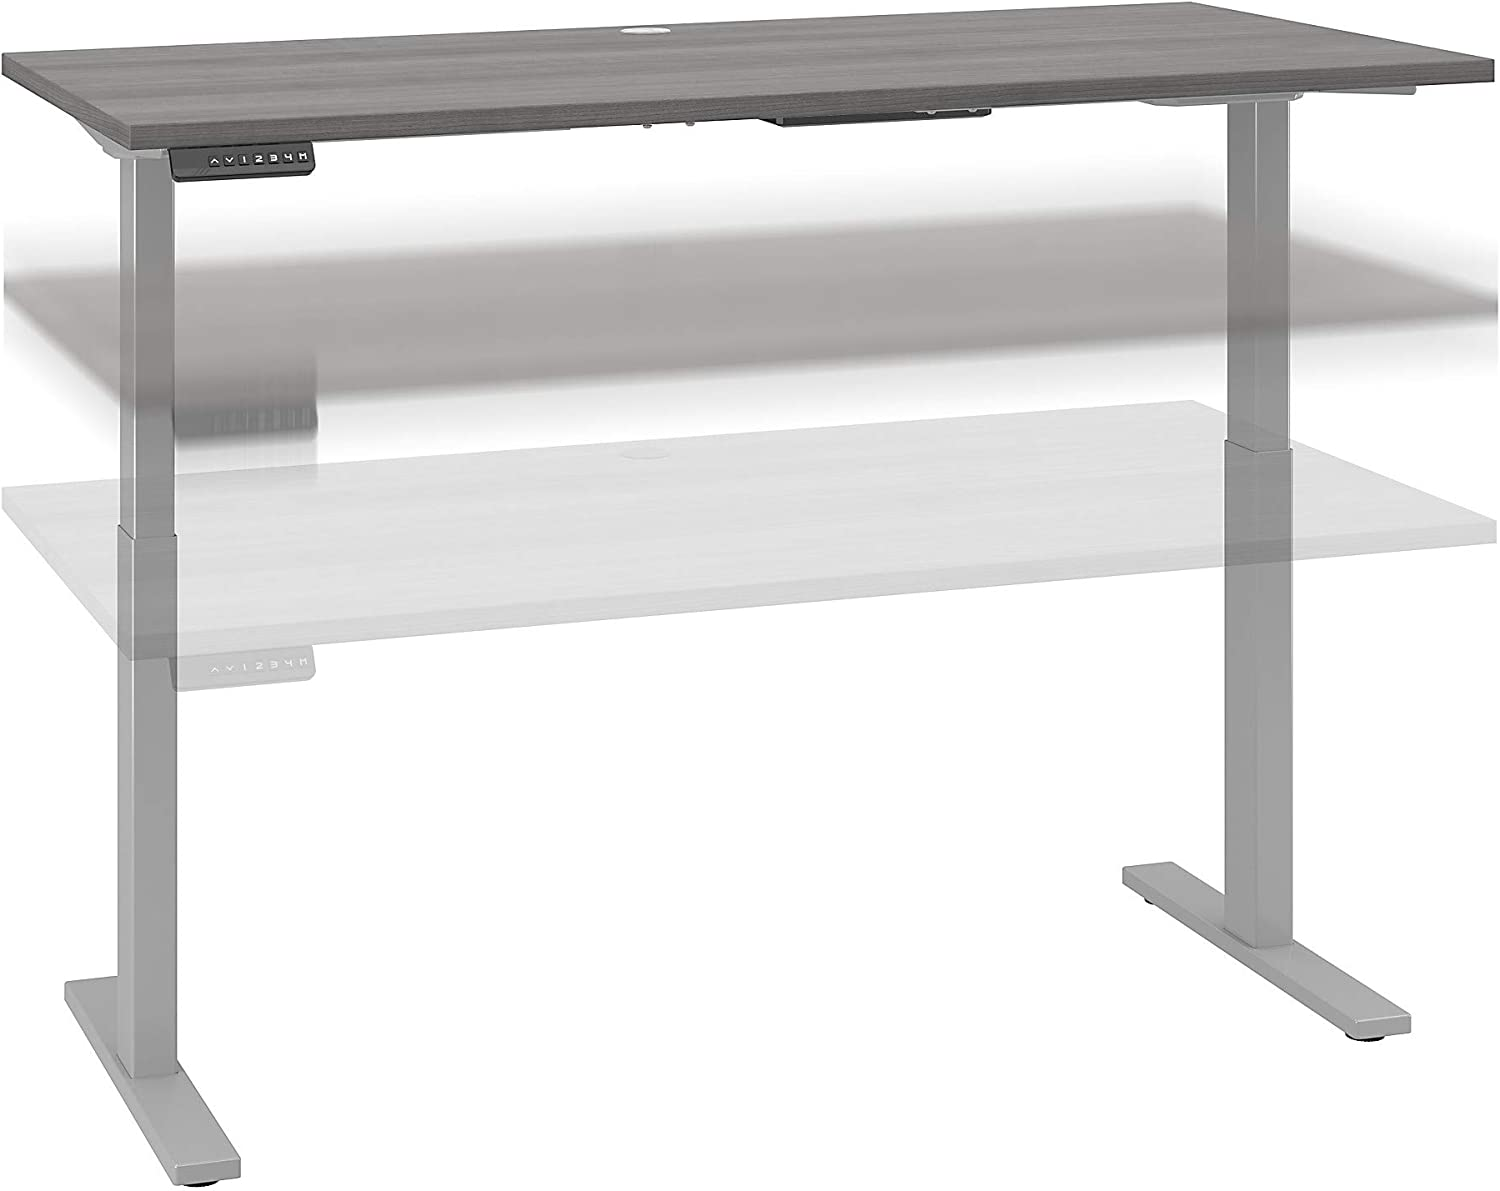 Bush Business Furniture Move 60 Series Height Adjustable Standing Desk, 60W x 30D, Platinum Gray with Cool Gray Metallic Base